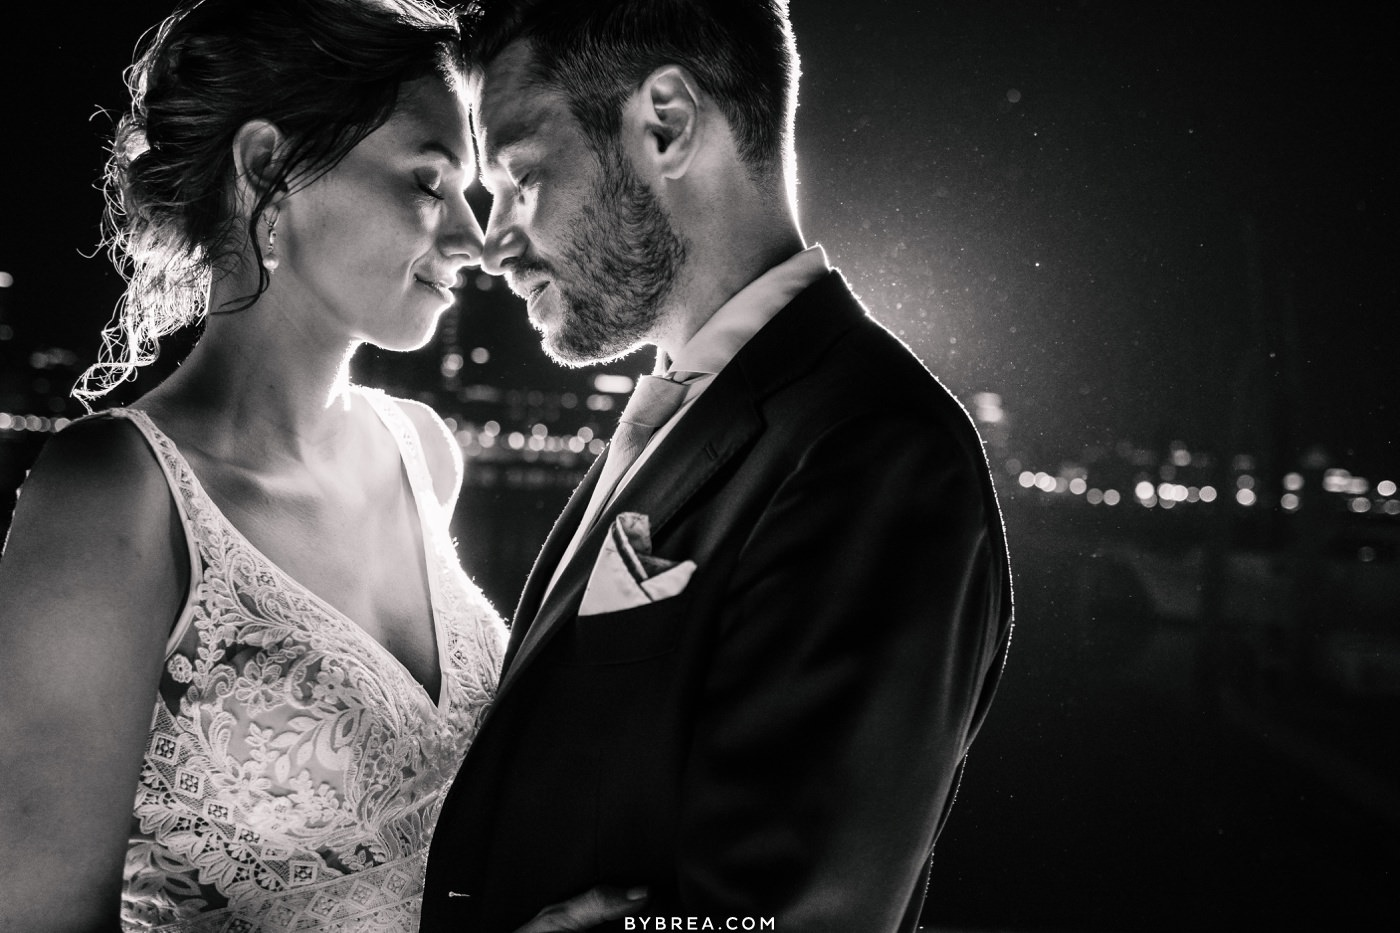 Night time portrait of bride and groom during wedding at Baltimore Museum of Industry Baltimore wedding